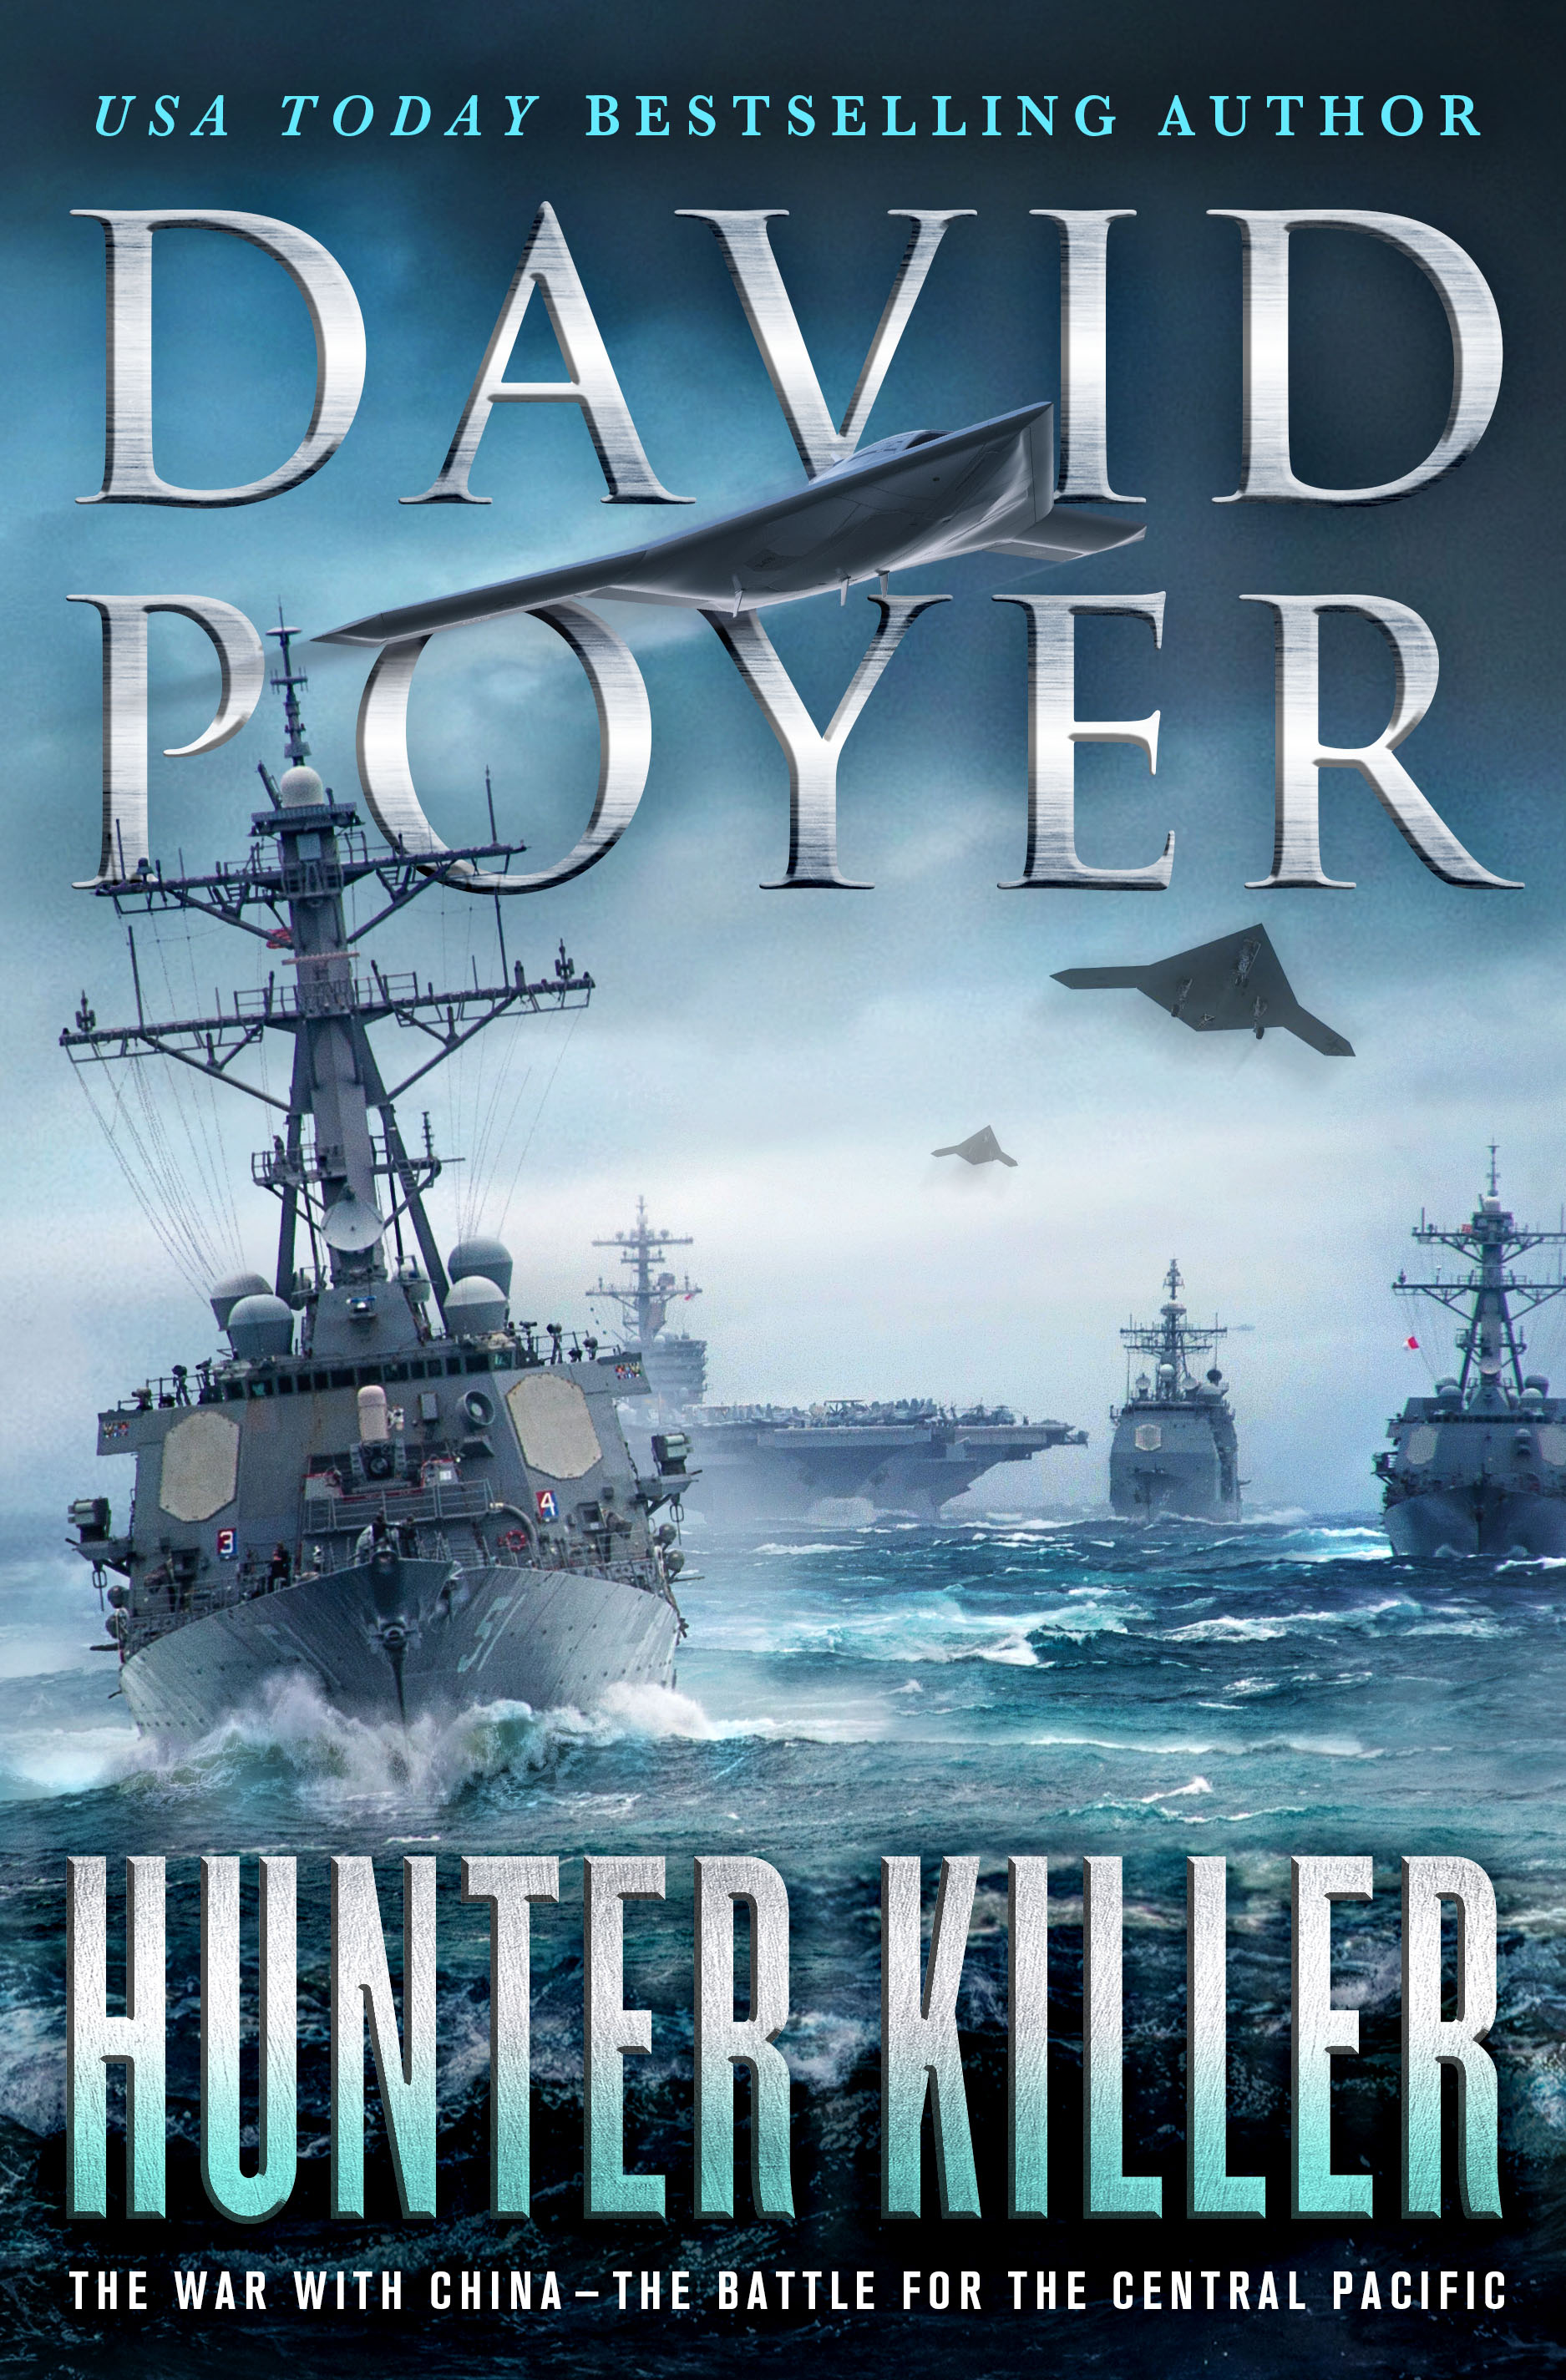 Hunter Killer The War with China - The Battle for the Central Pacific